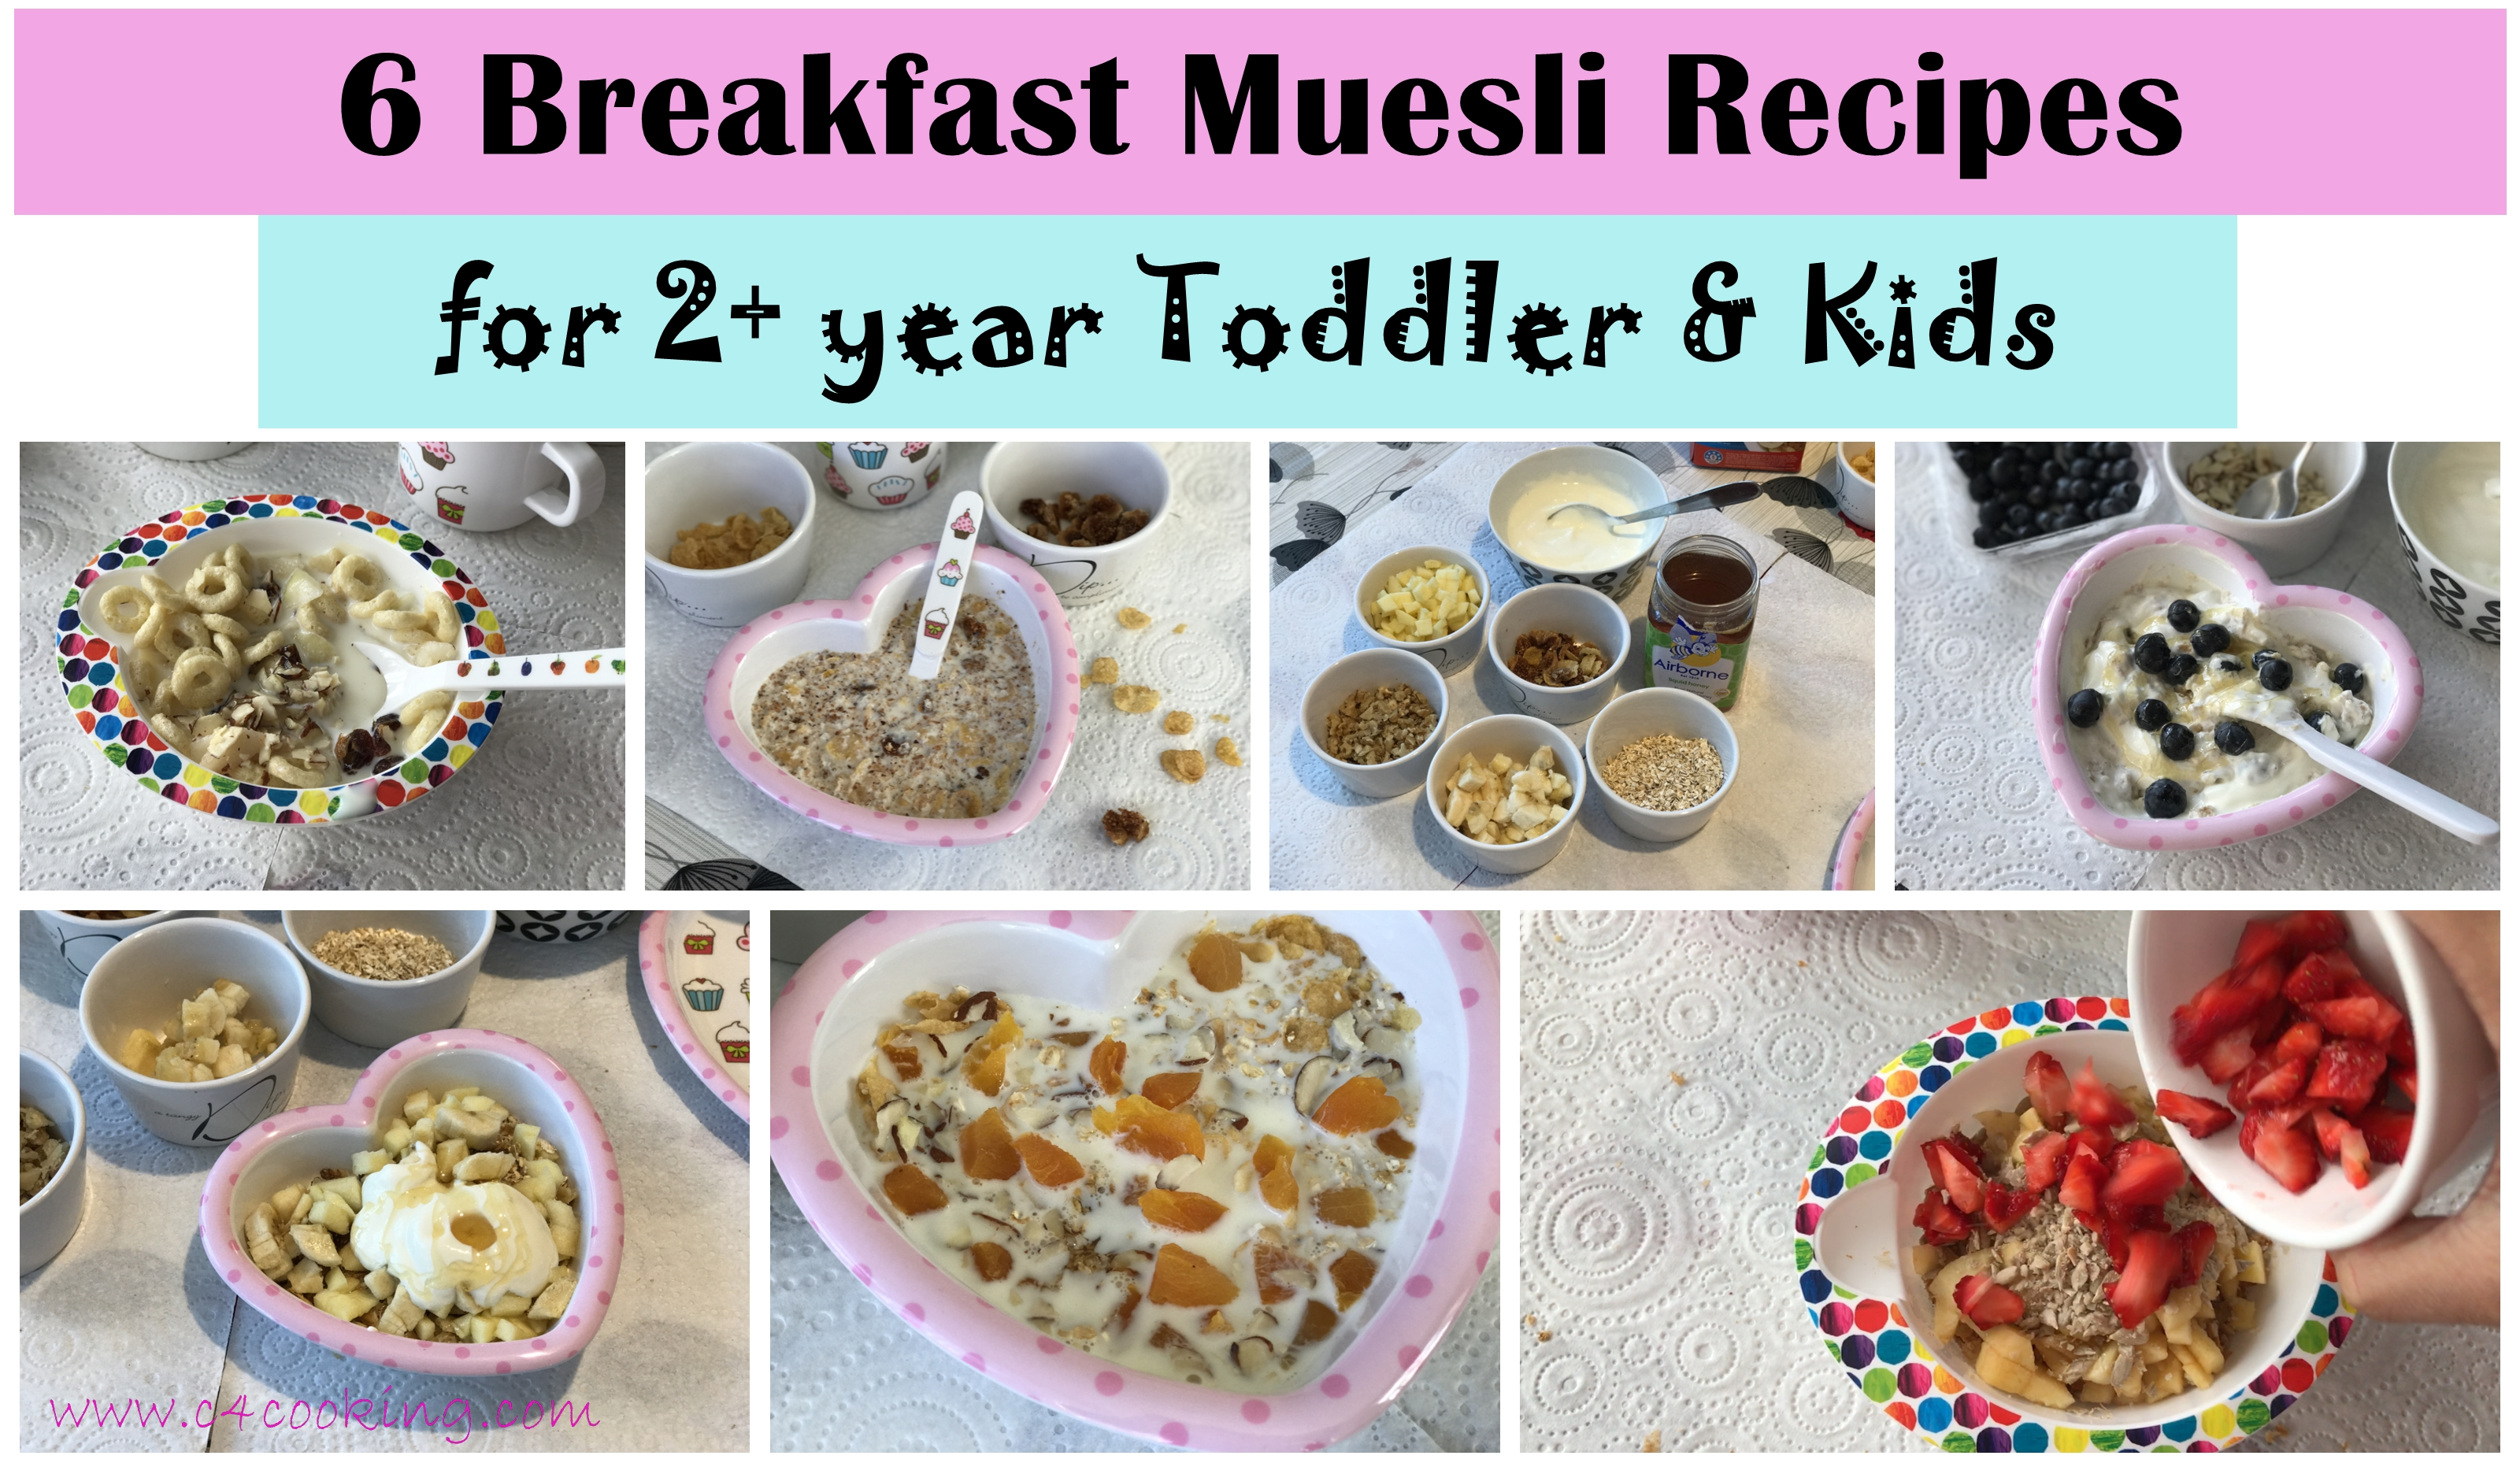 6 breakfast muesli recipes, c4cooking baby kids muesi recipes